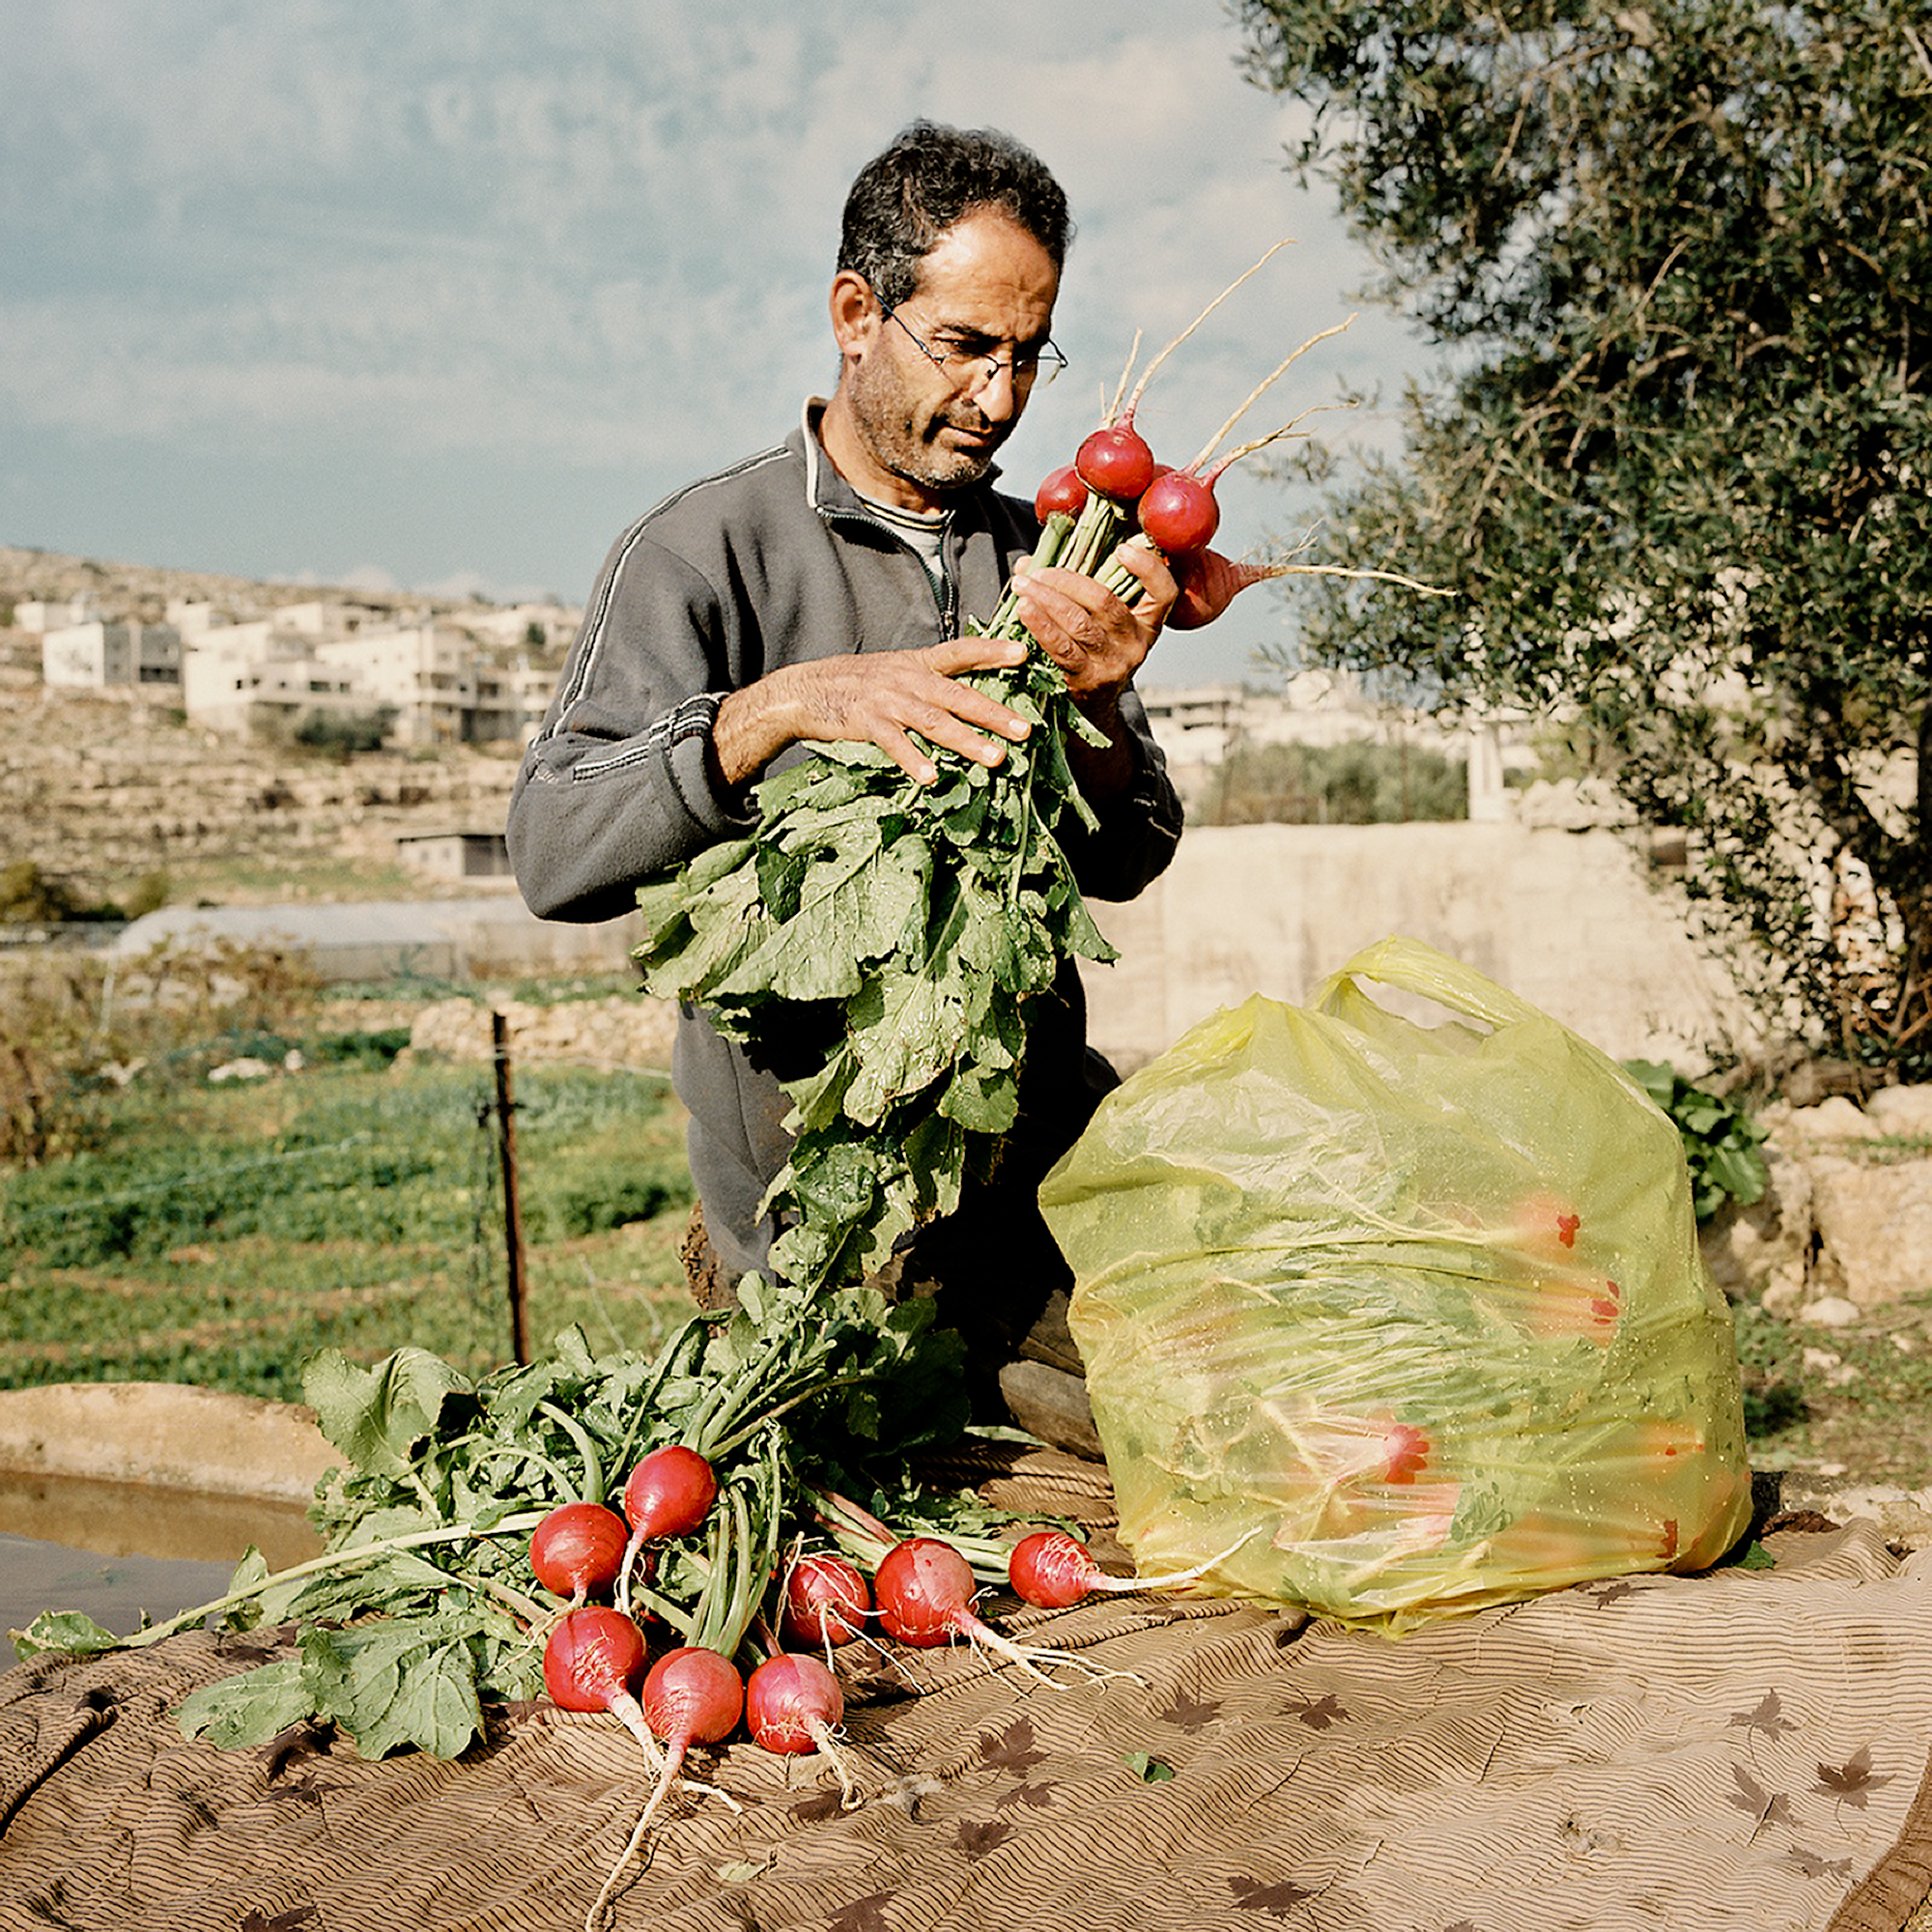 Hamad, cleaning his radishes before taking them to the market.